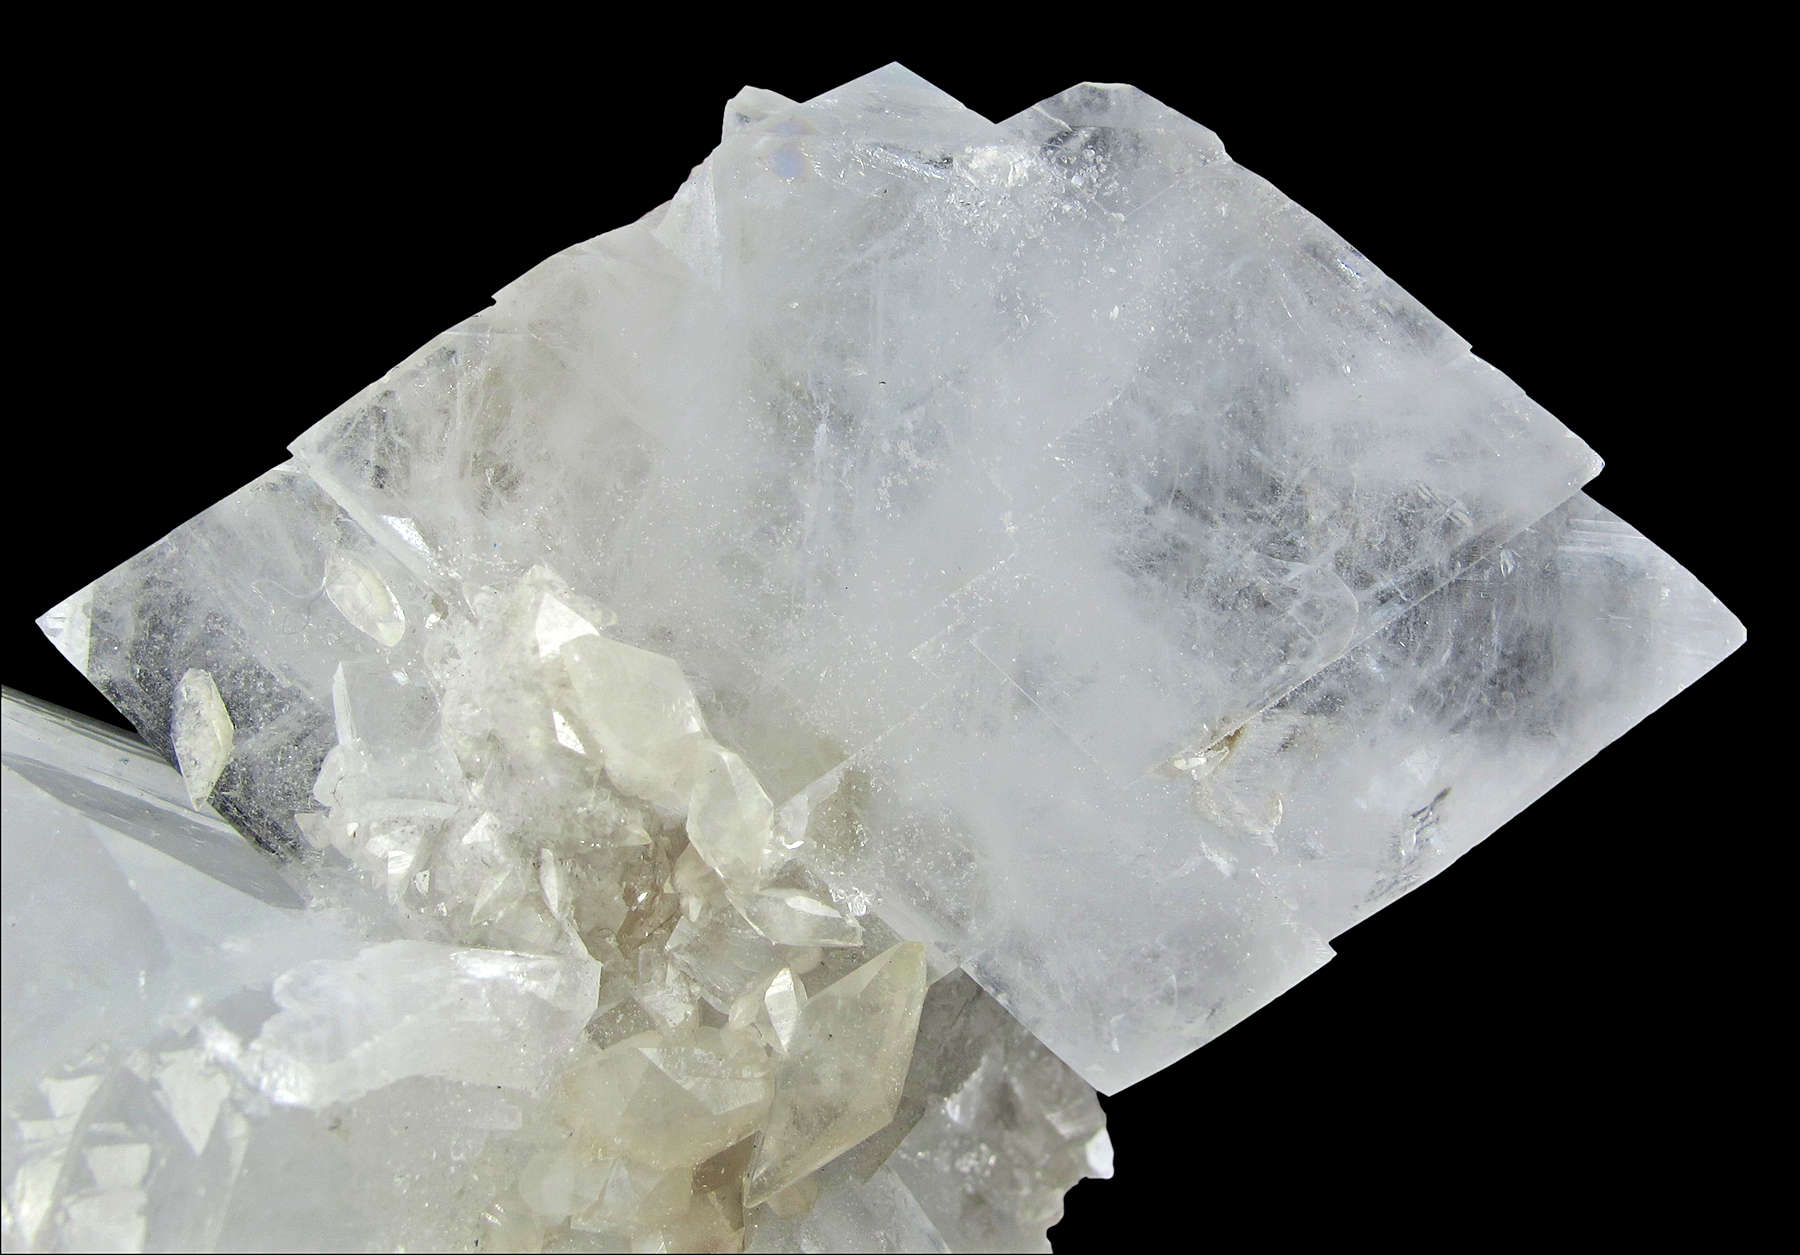 Two large tabular glassy gemmy colorless crystals celestine 7 8 cm